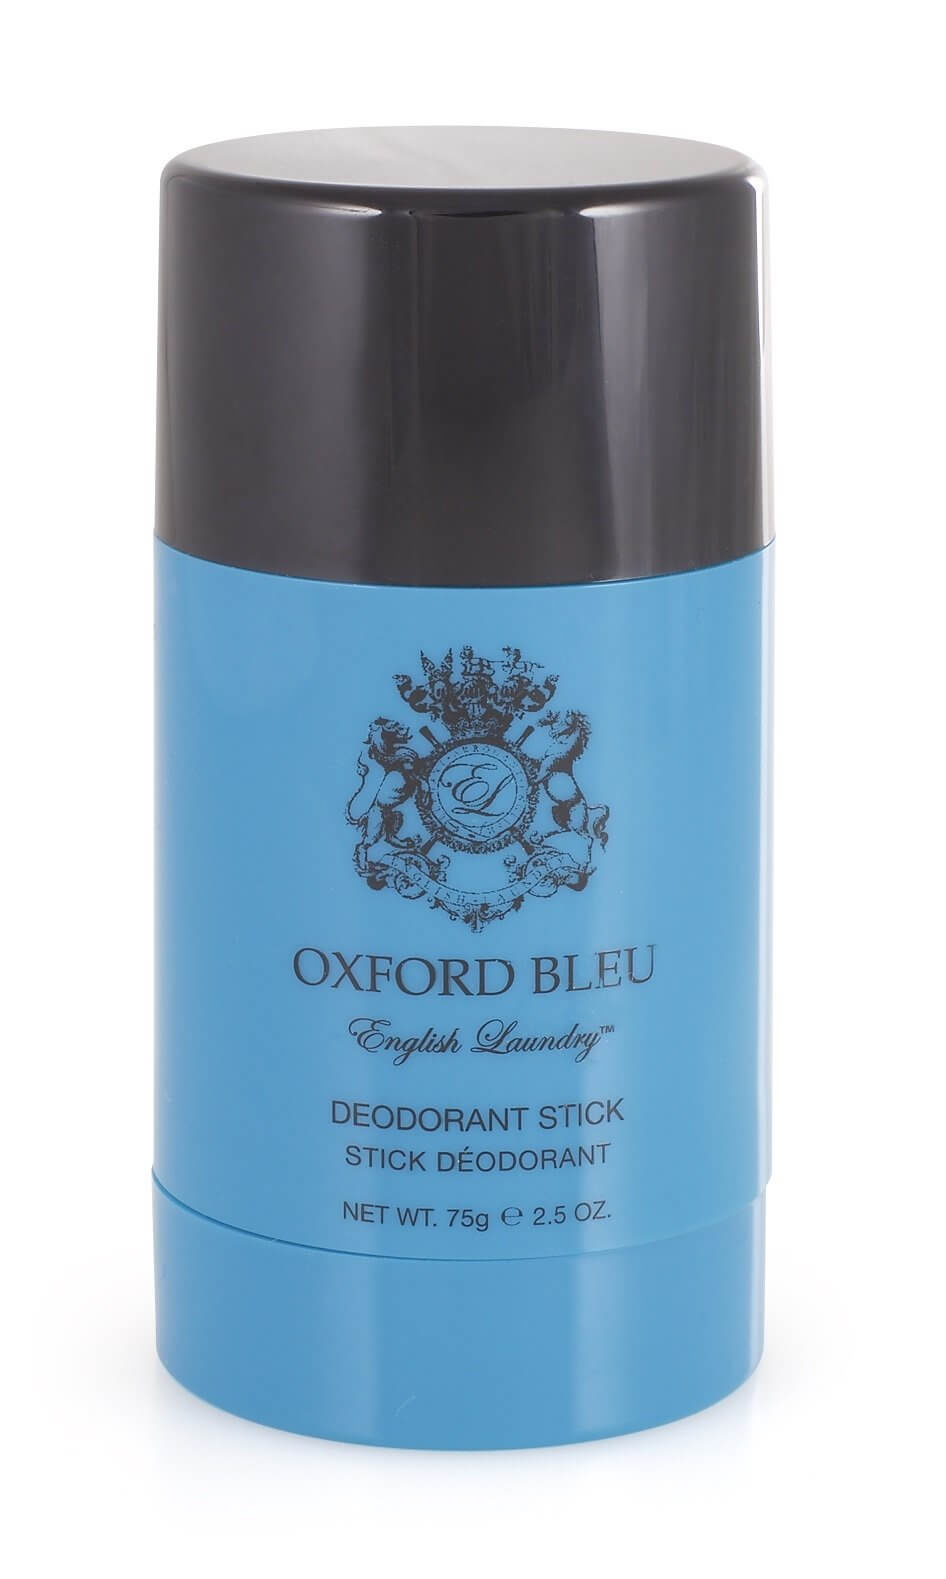 Buy Oxford Bleu 2 5oz Deodorant Stick English Laundry